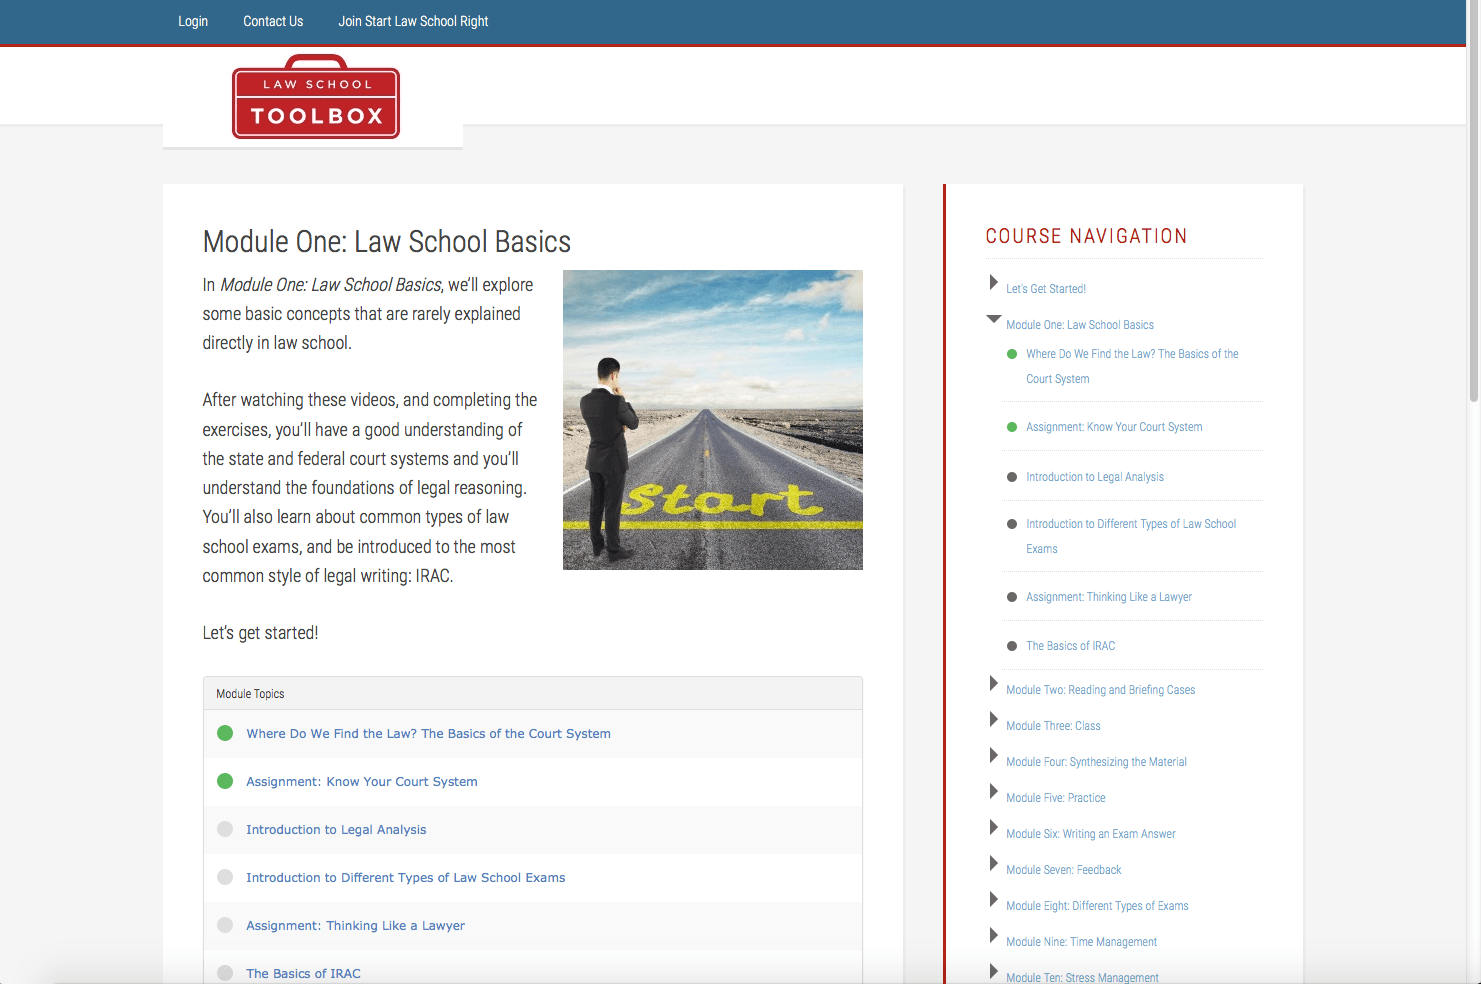 Start Law School Right Module